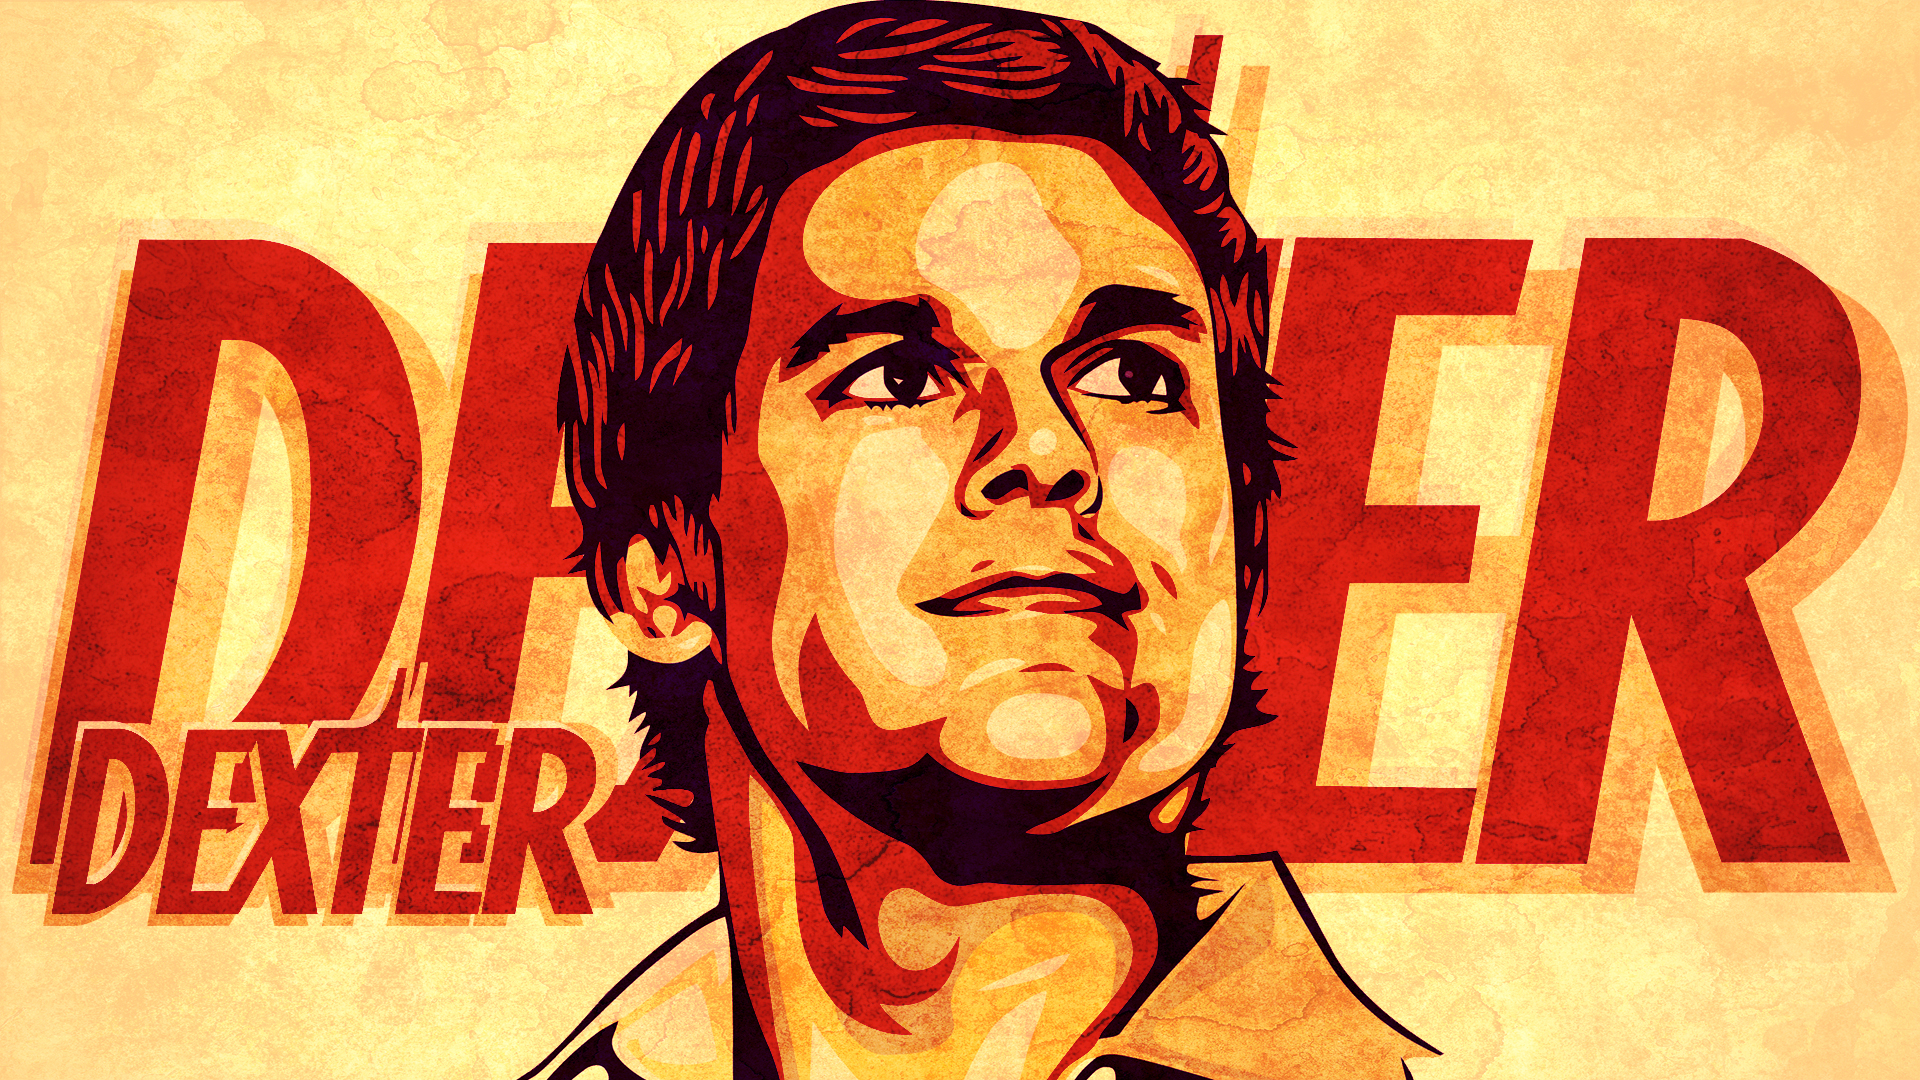 Dexter Wallpaper 9